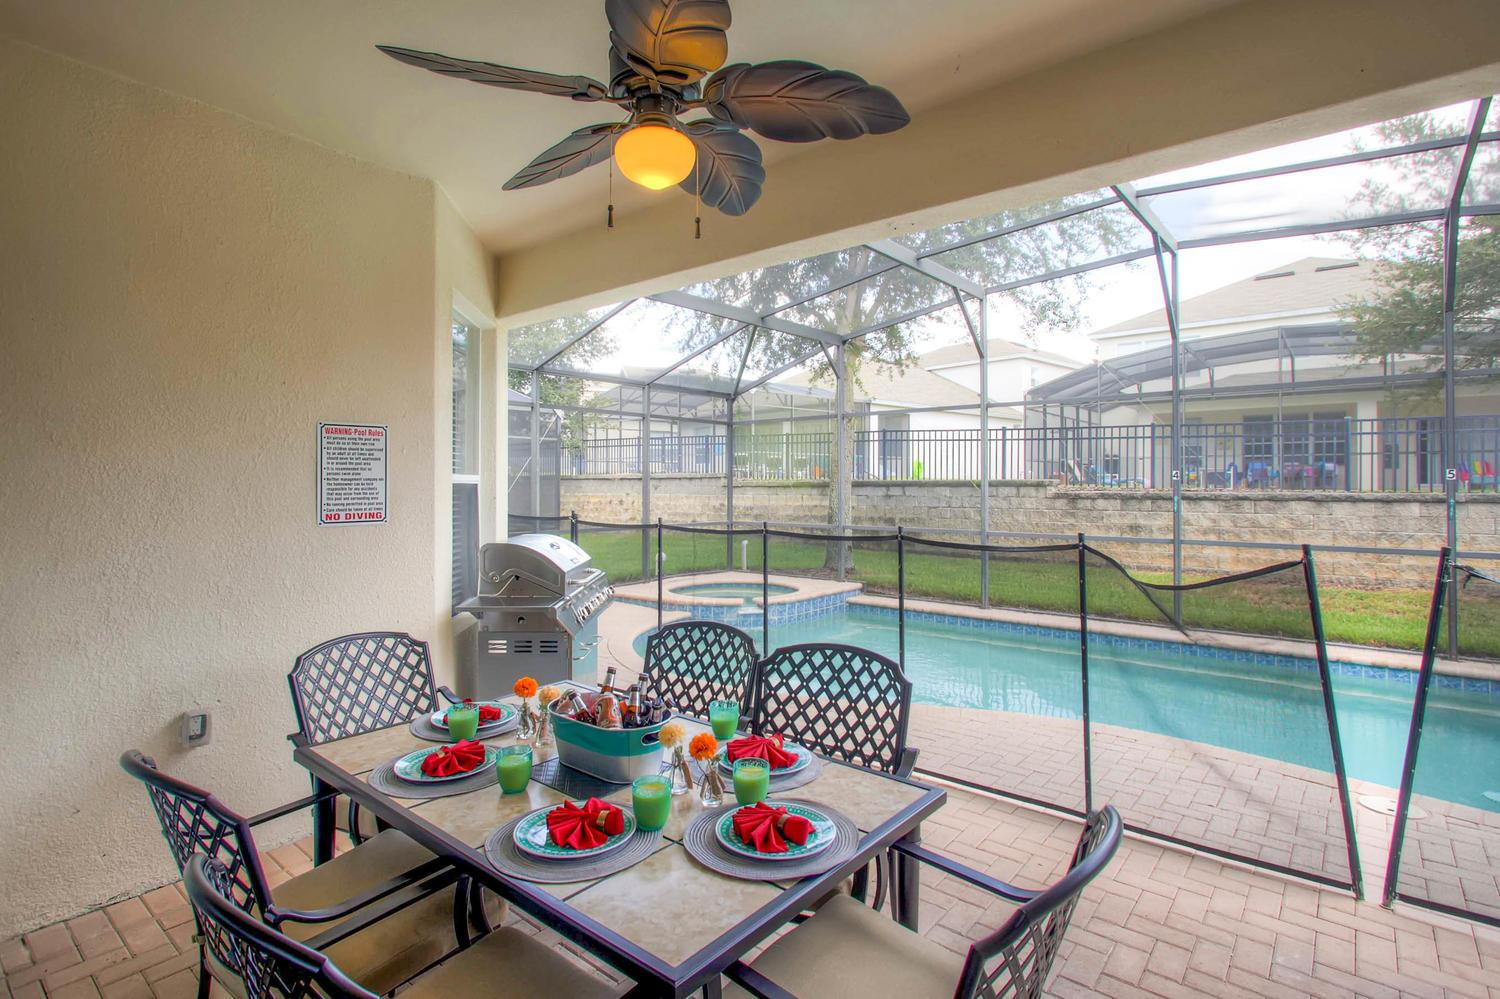 Shaded deck w ceiling fan, upgraded patio dining, grill and child safety fence